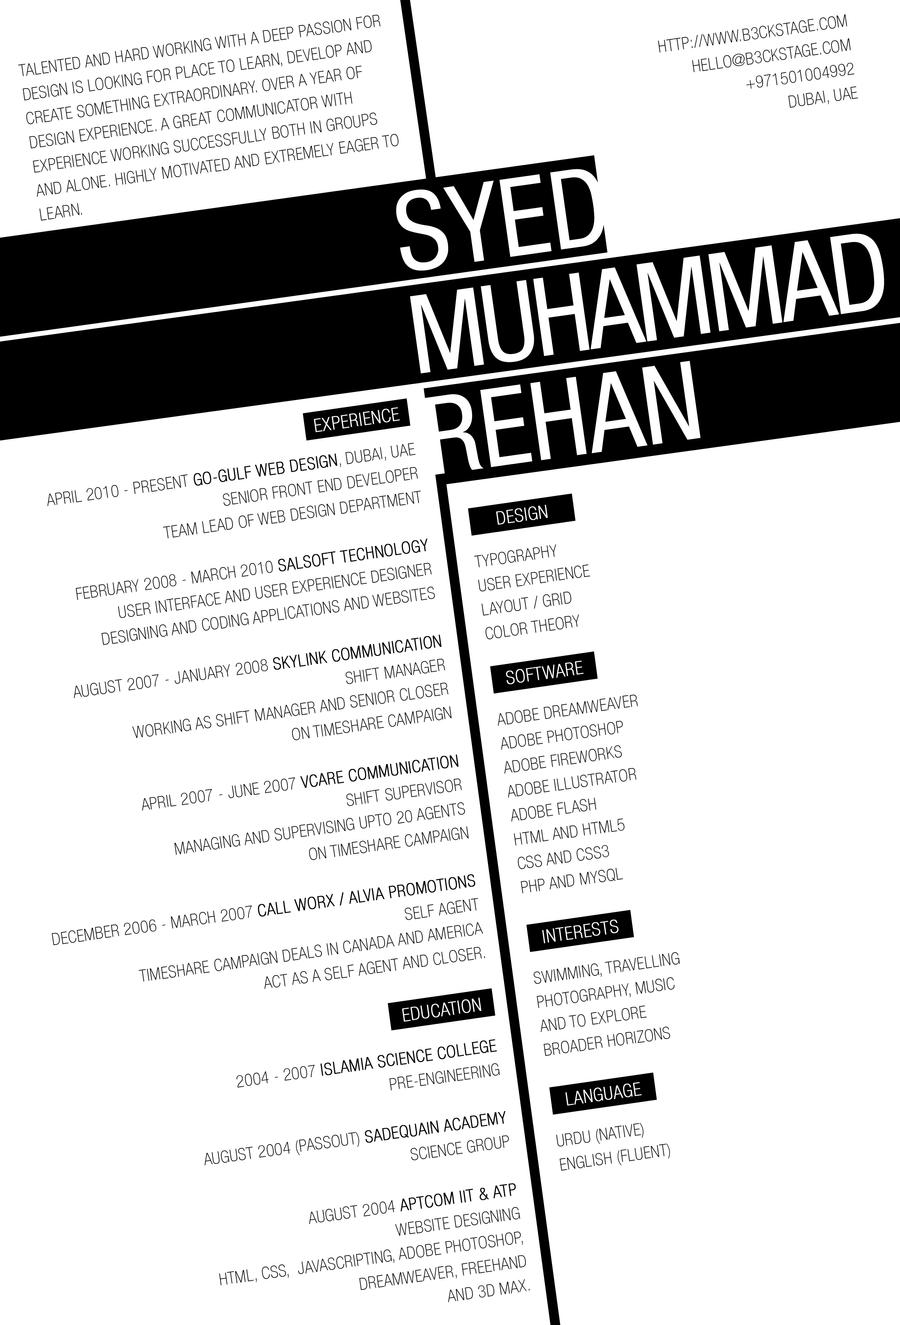 Creative Resume by B3cKStAgE